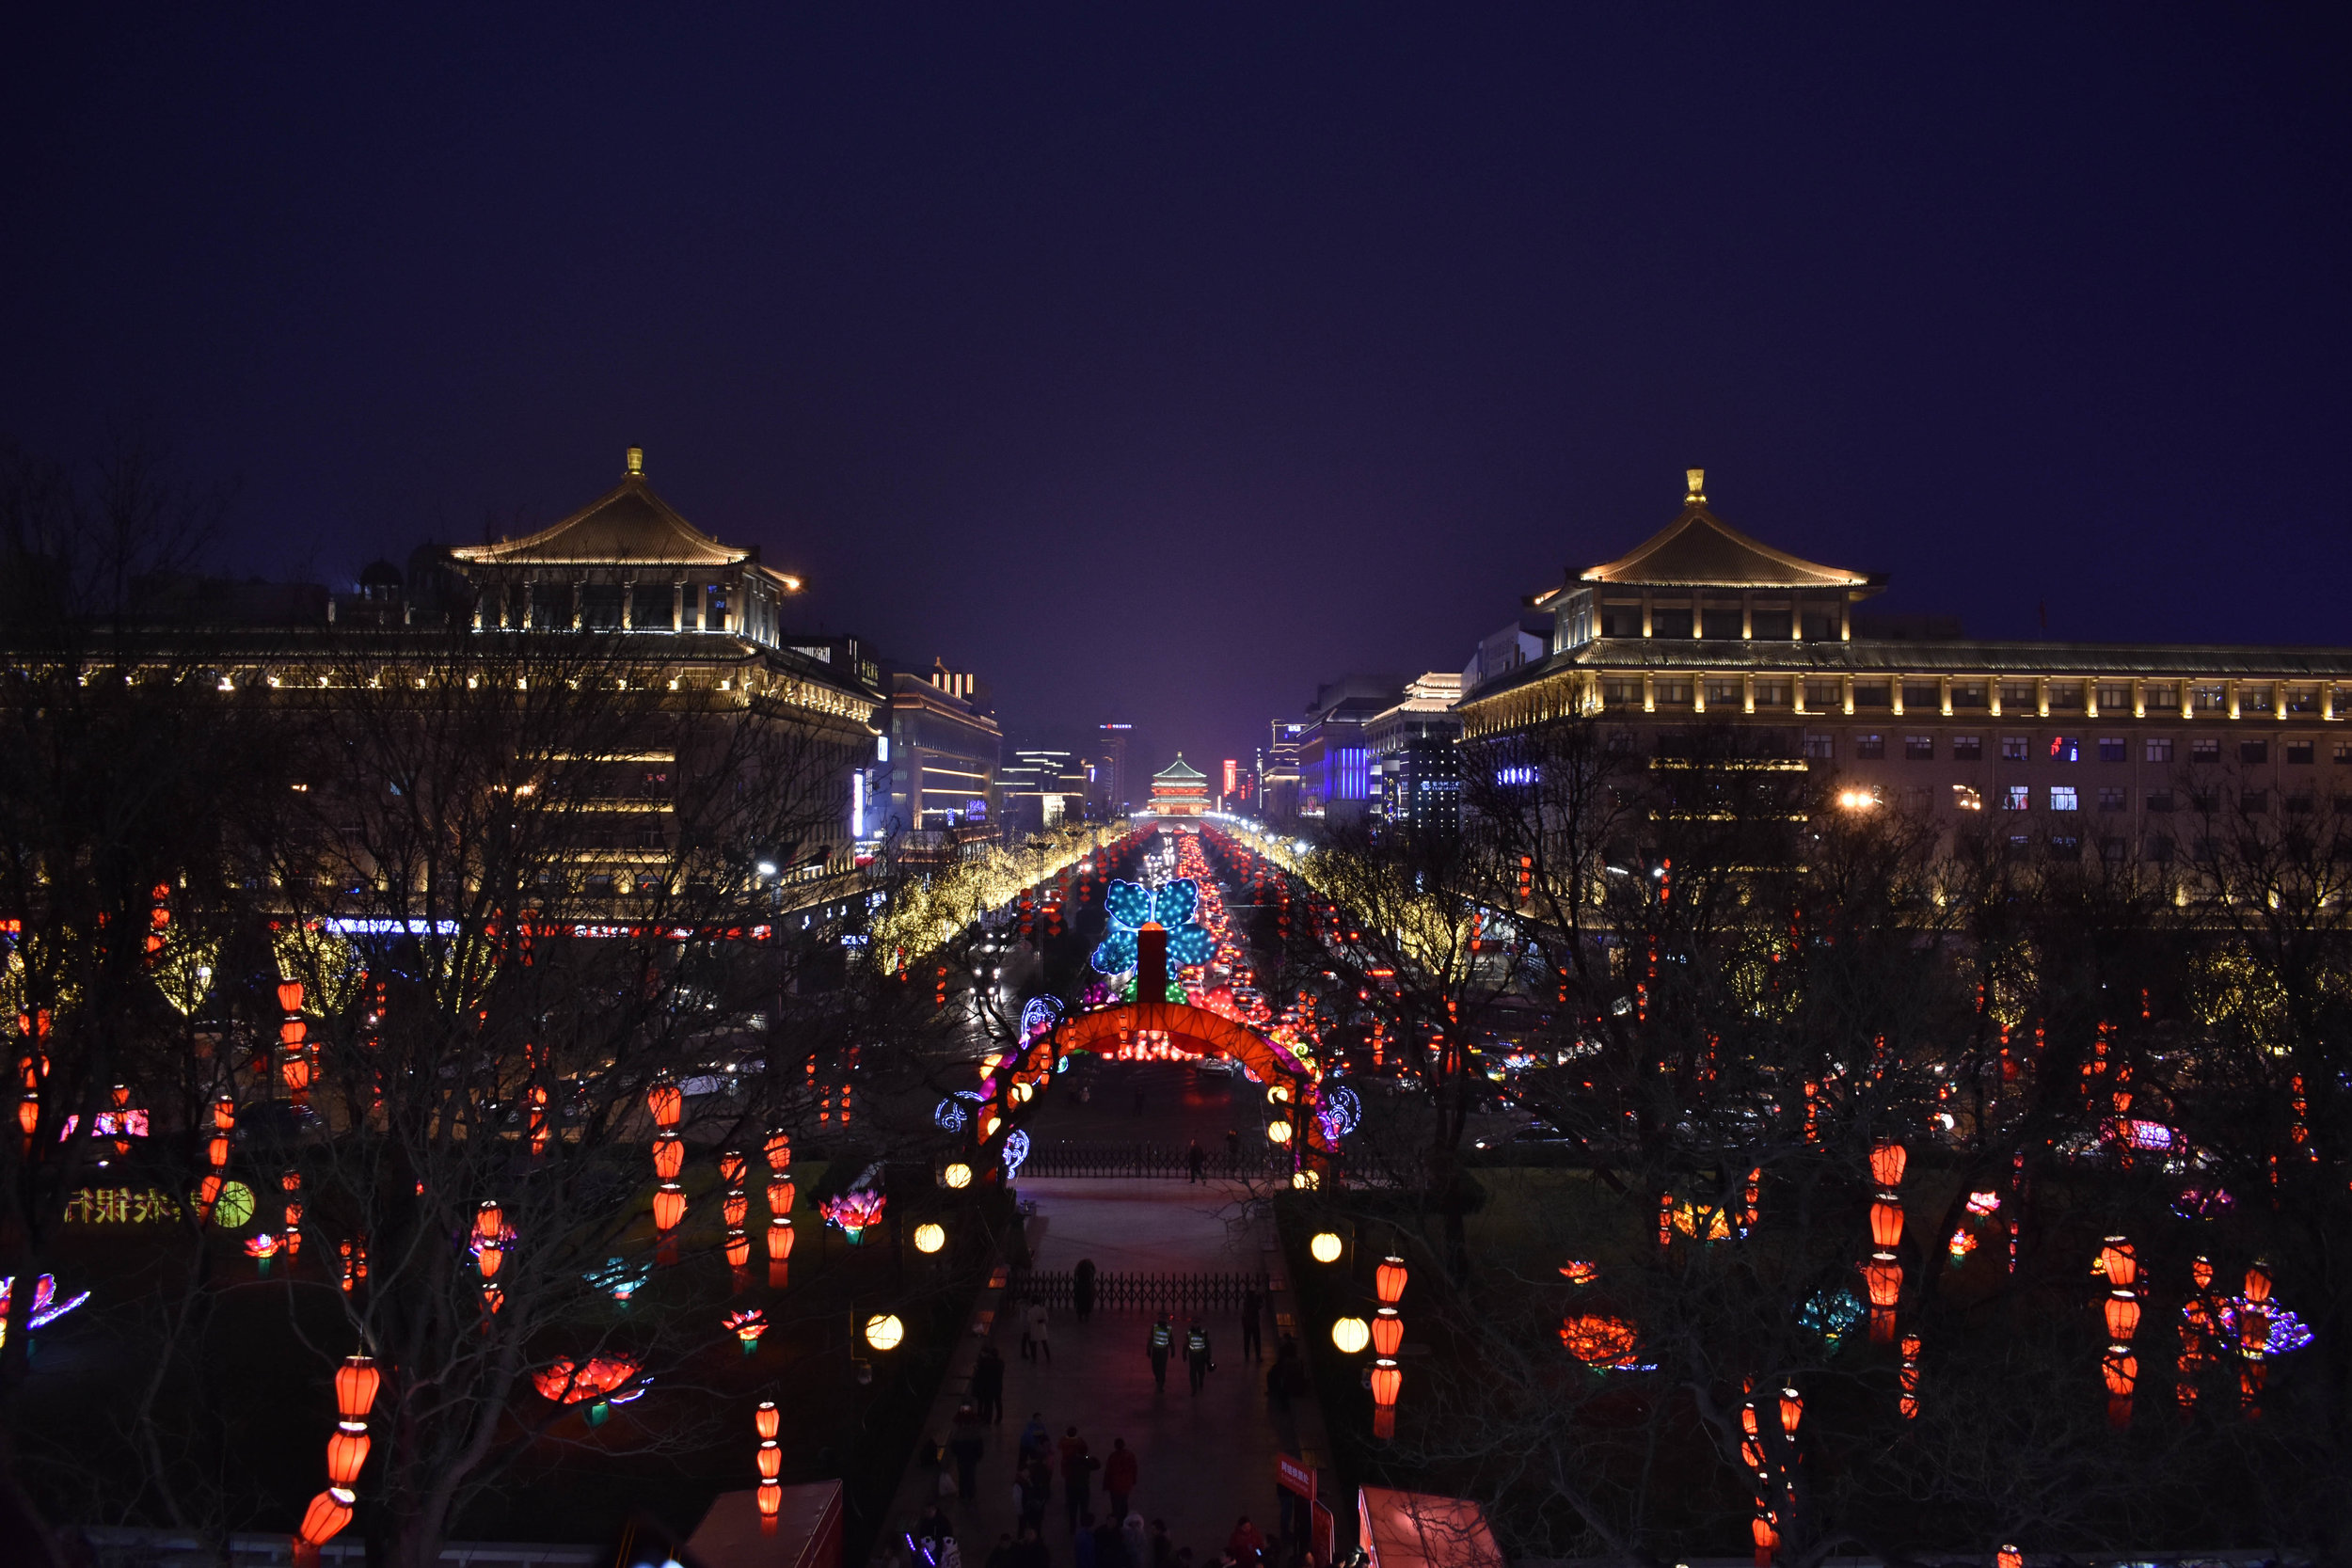 View of Xi'an from the Wall